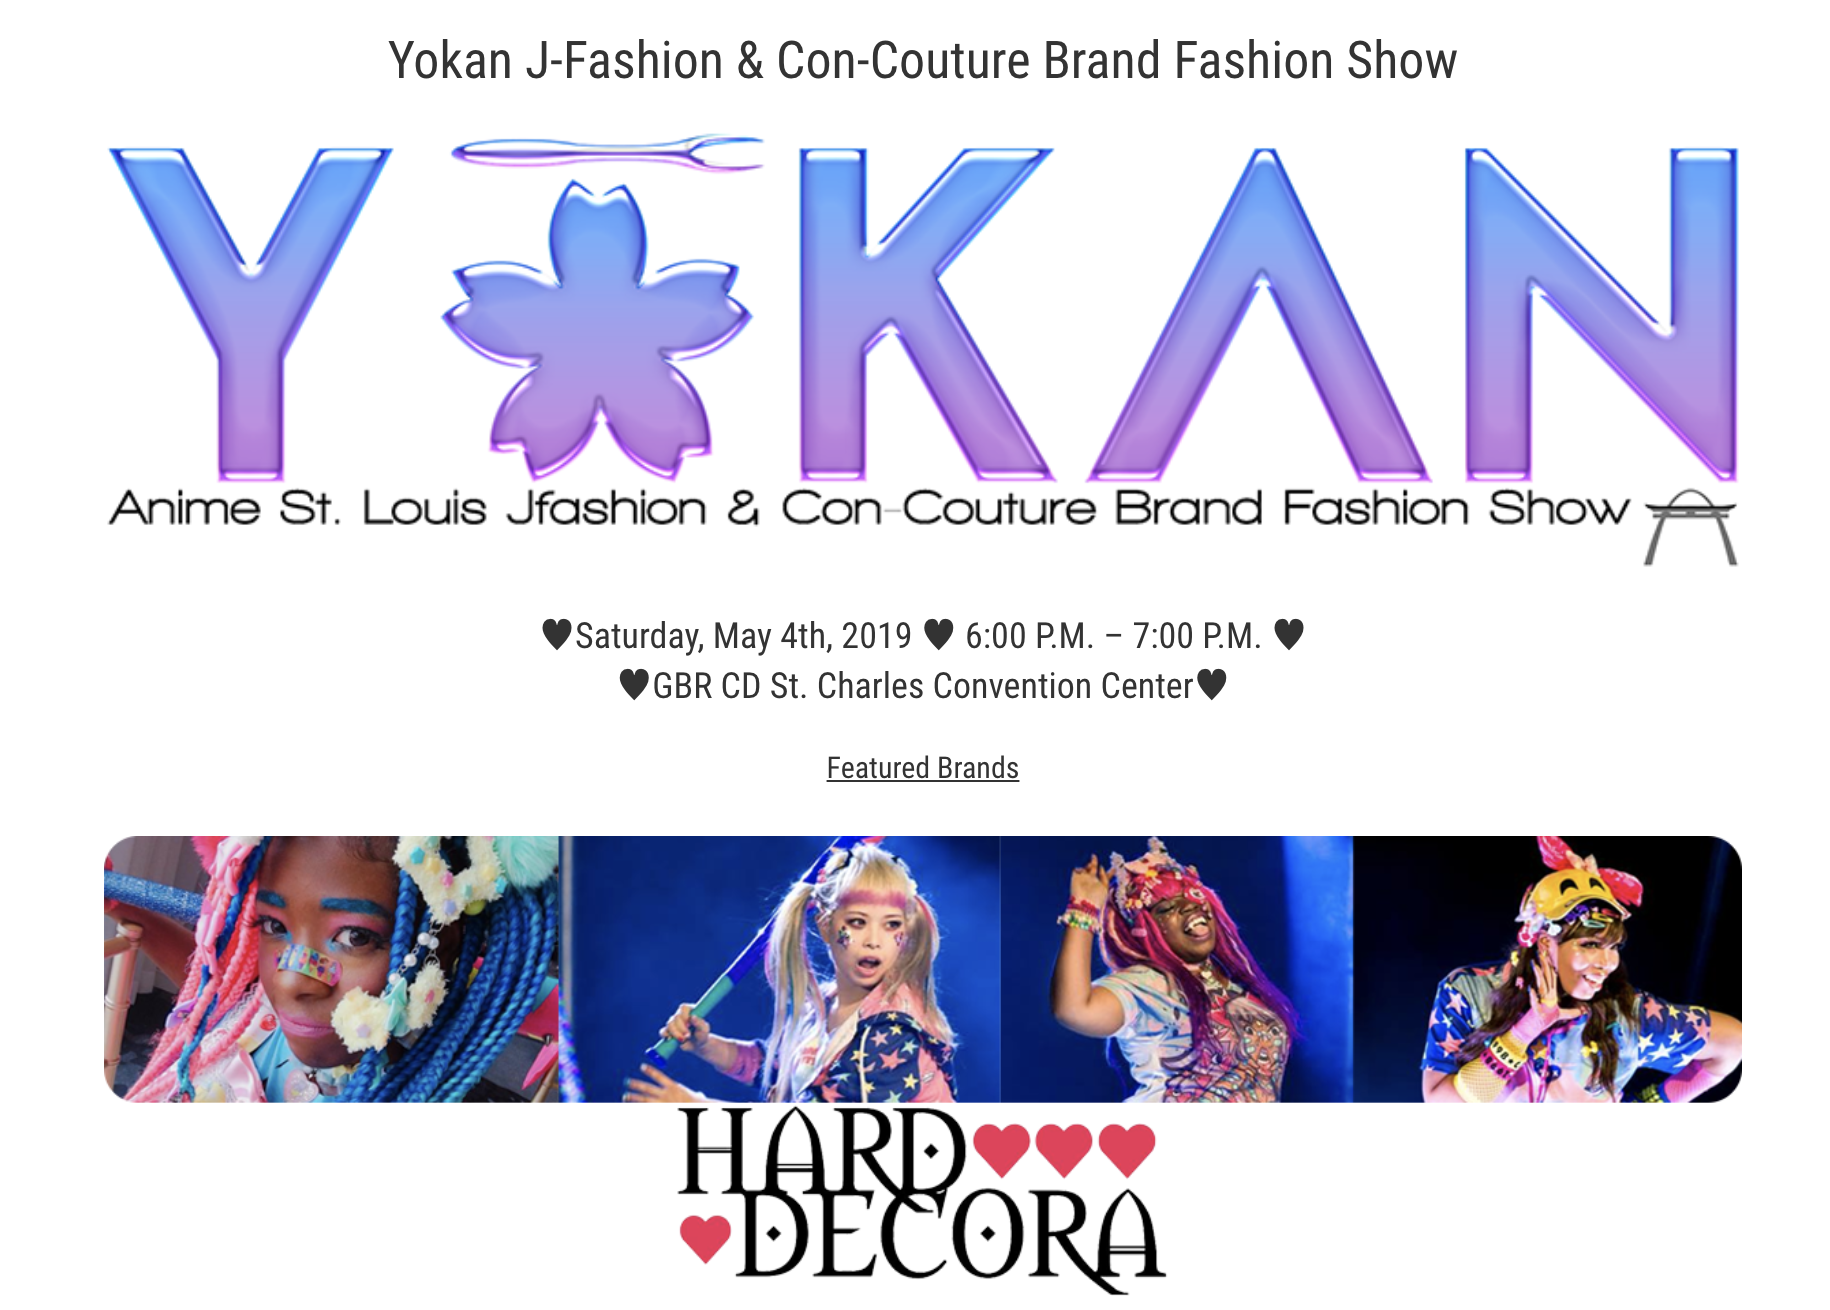 Yokan Fashion show details pictured.